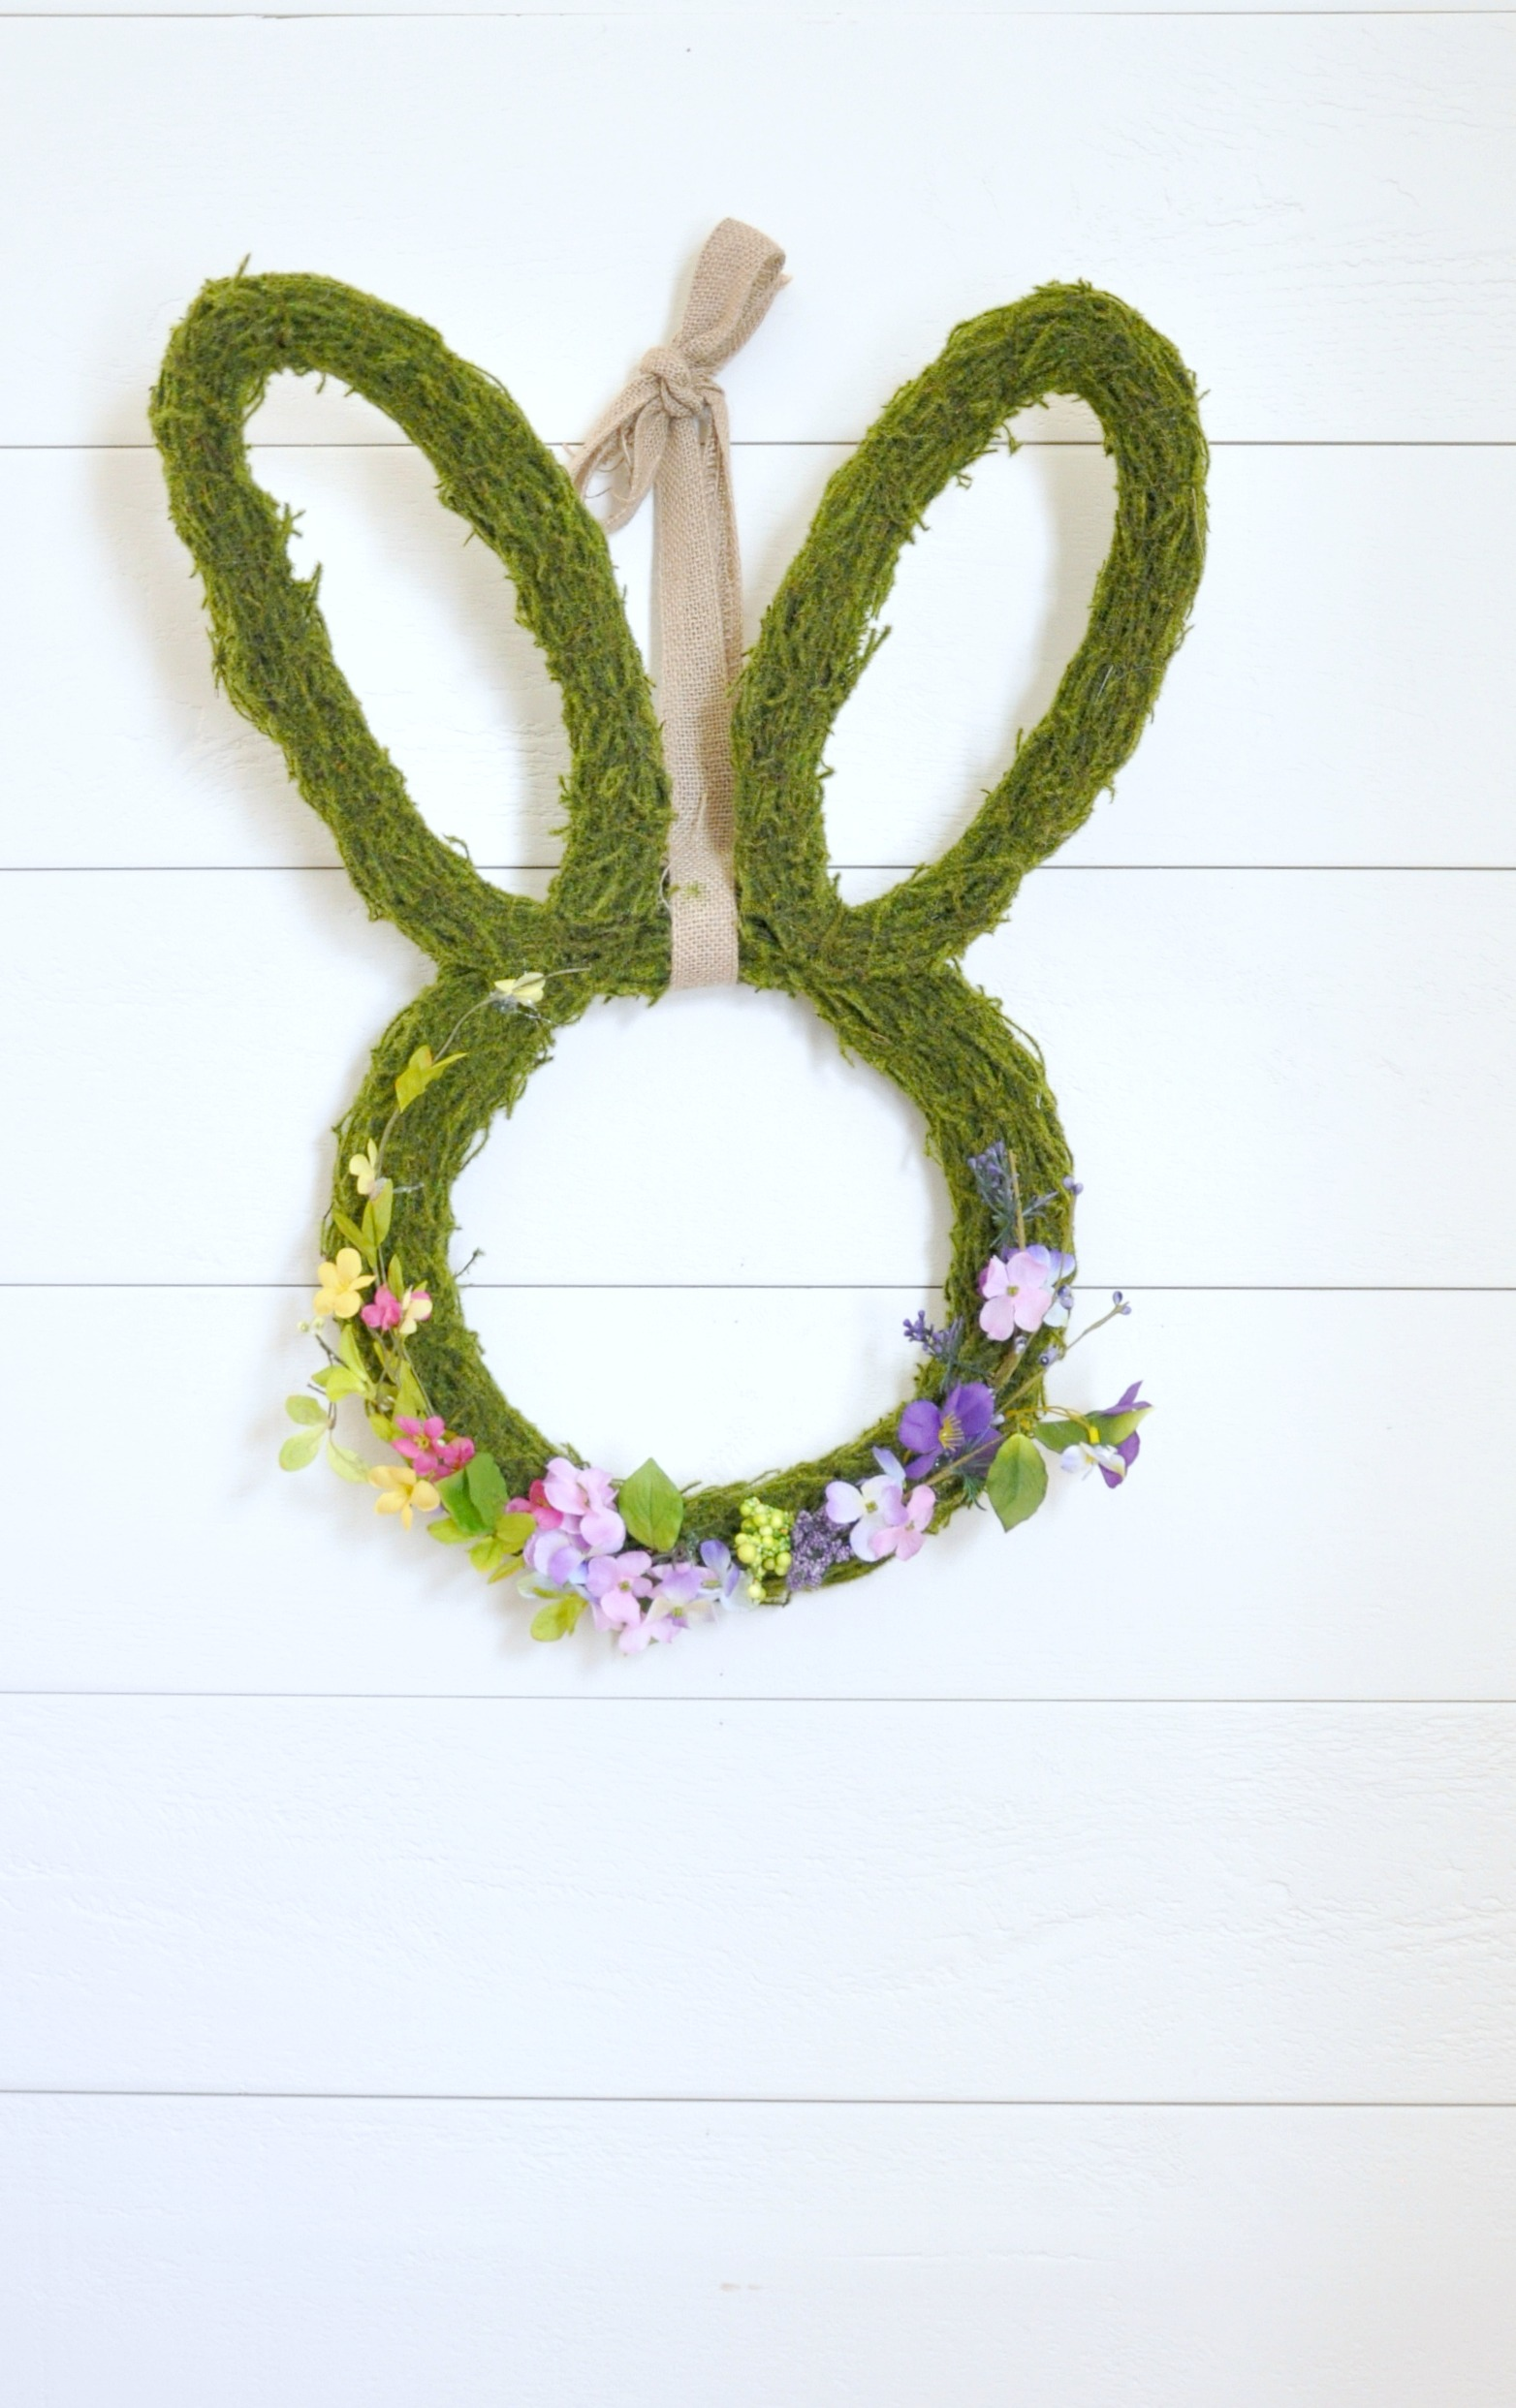 green_rabbit_wreath_with_flowers